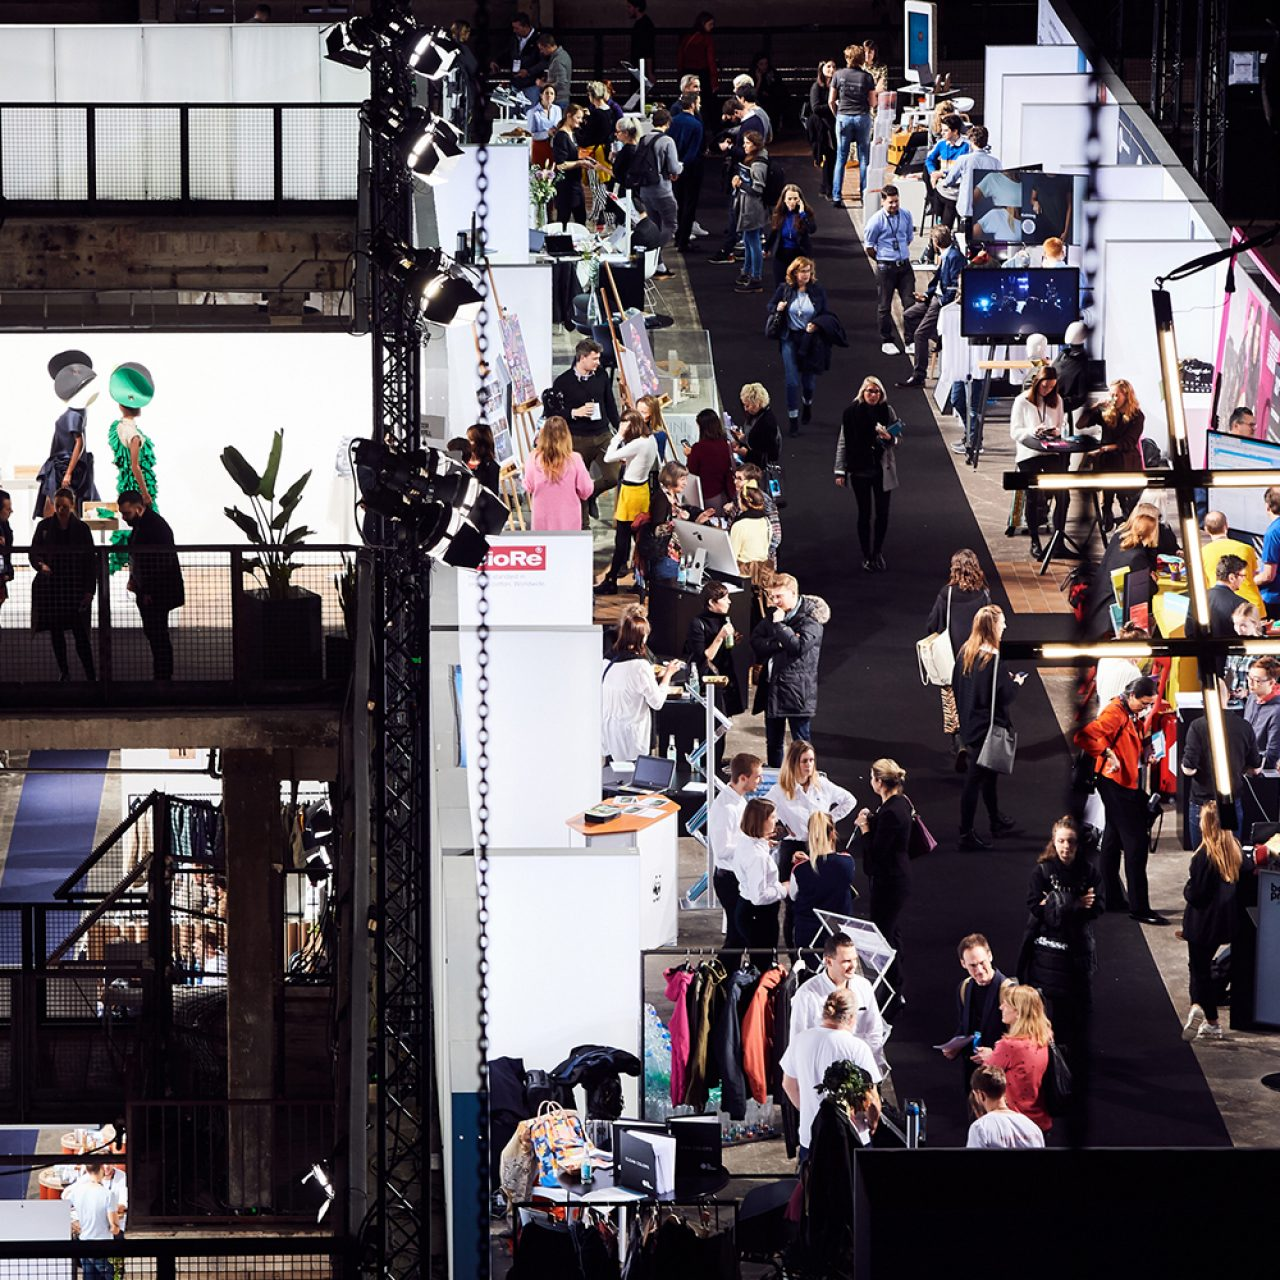 Messe Frankfurt's Fashionsustain conference focuses on sustainable textile innovations. © Neonyt